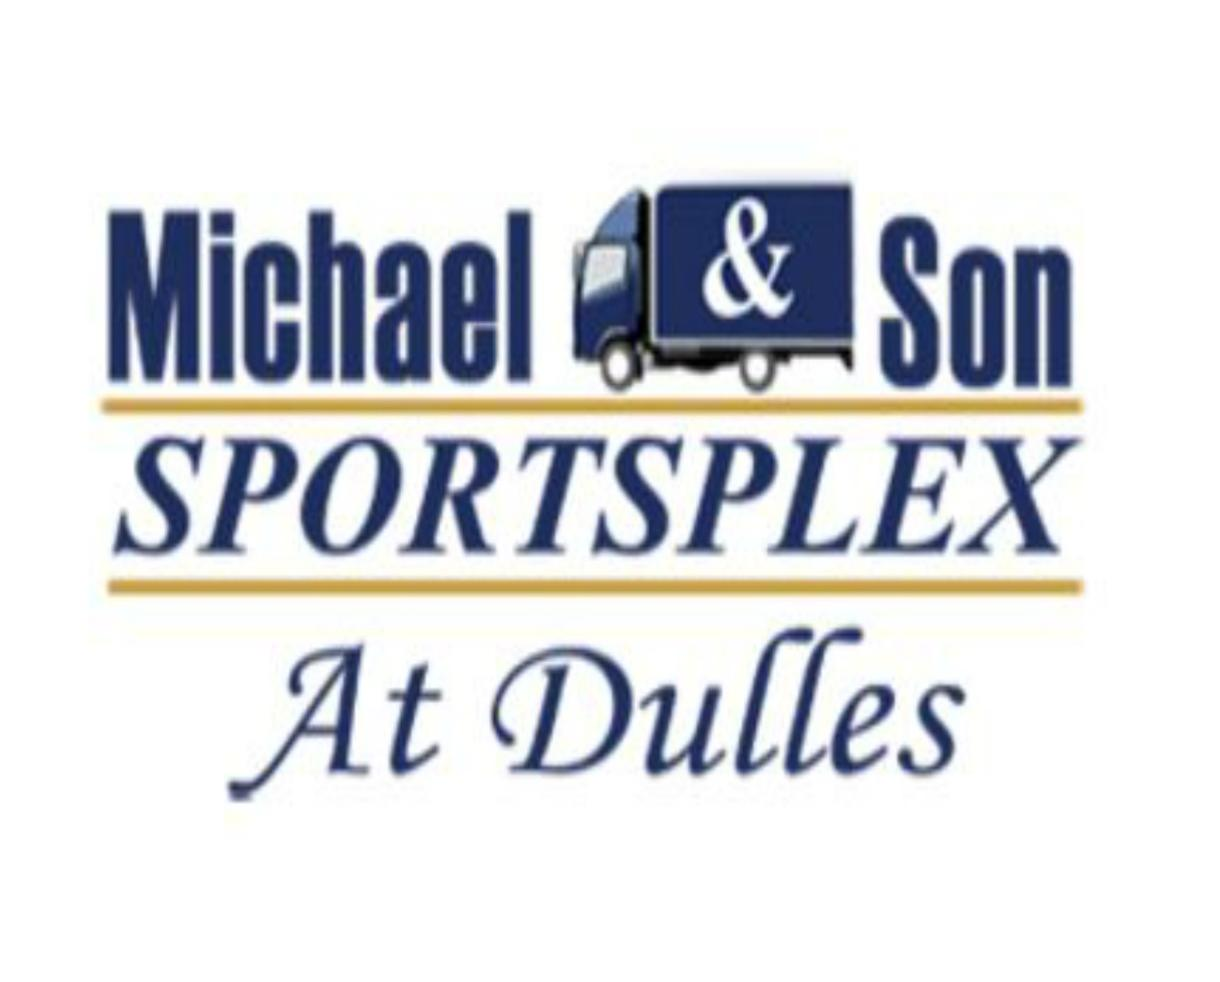 $89 for 8 Weeks of Soccer Training at Michael & Son Sportsplex for Ages 6-12 Dulles, Brambleton, or Frederick (Up to 41% Off)